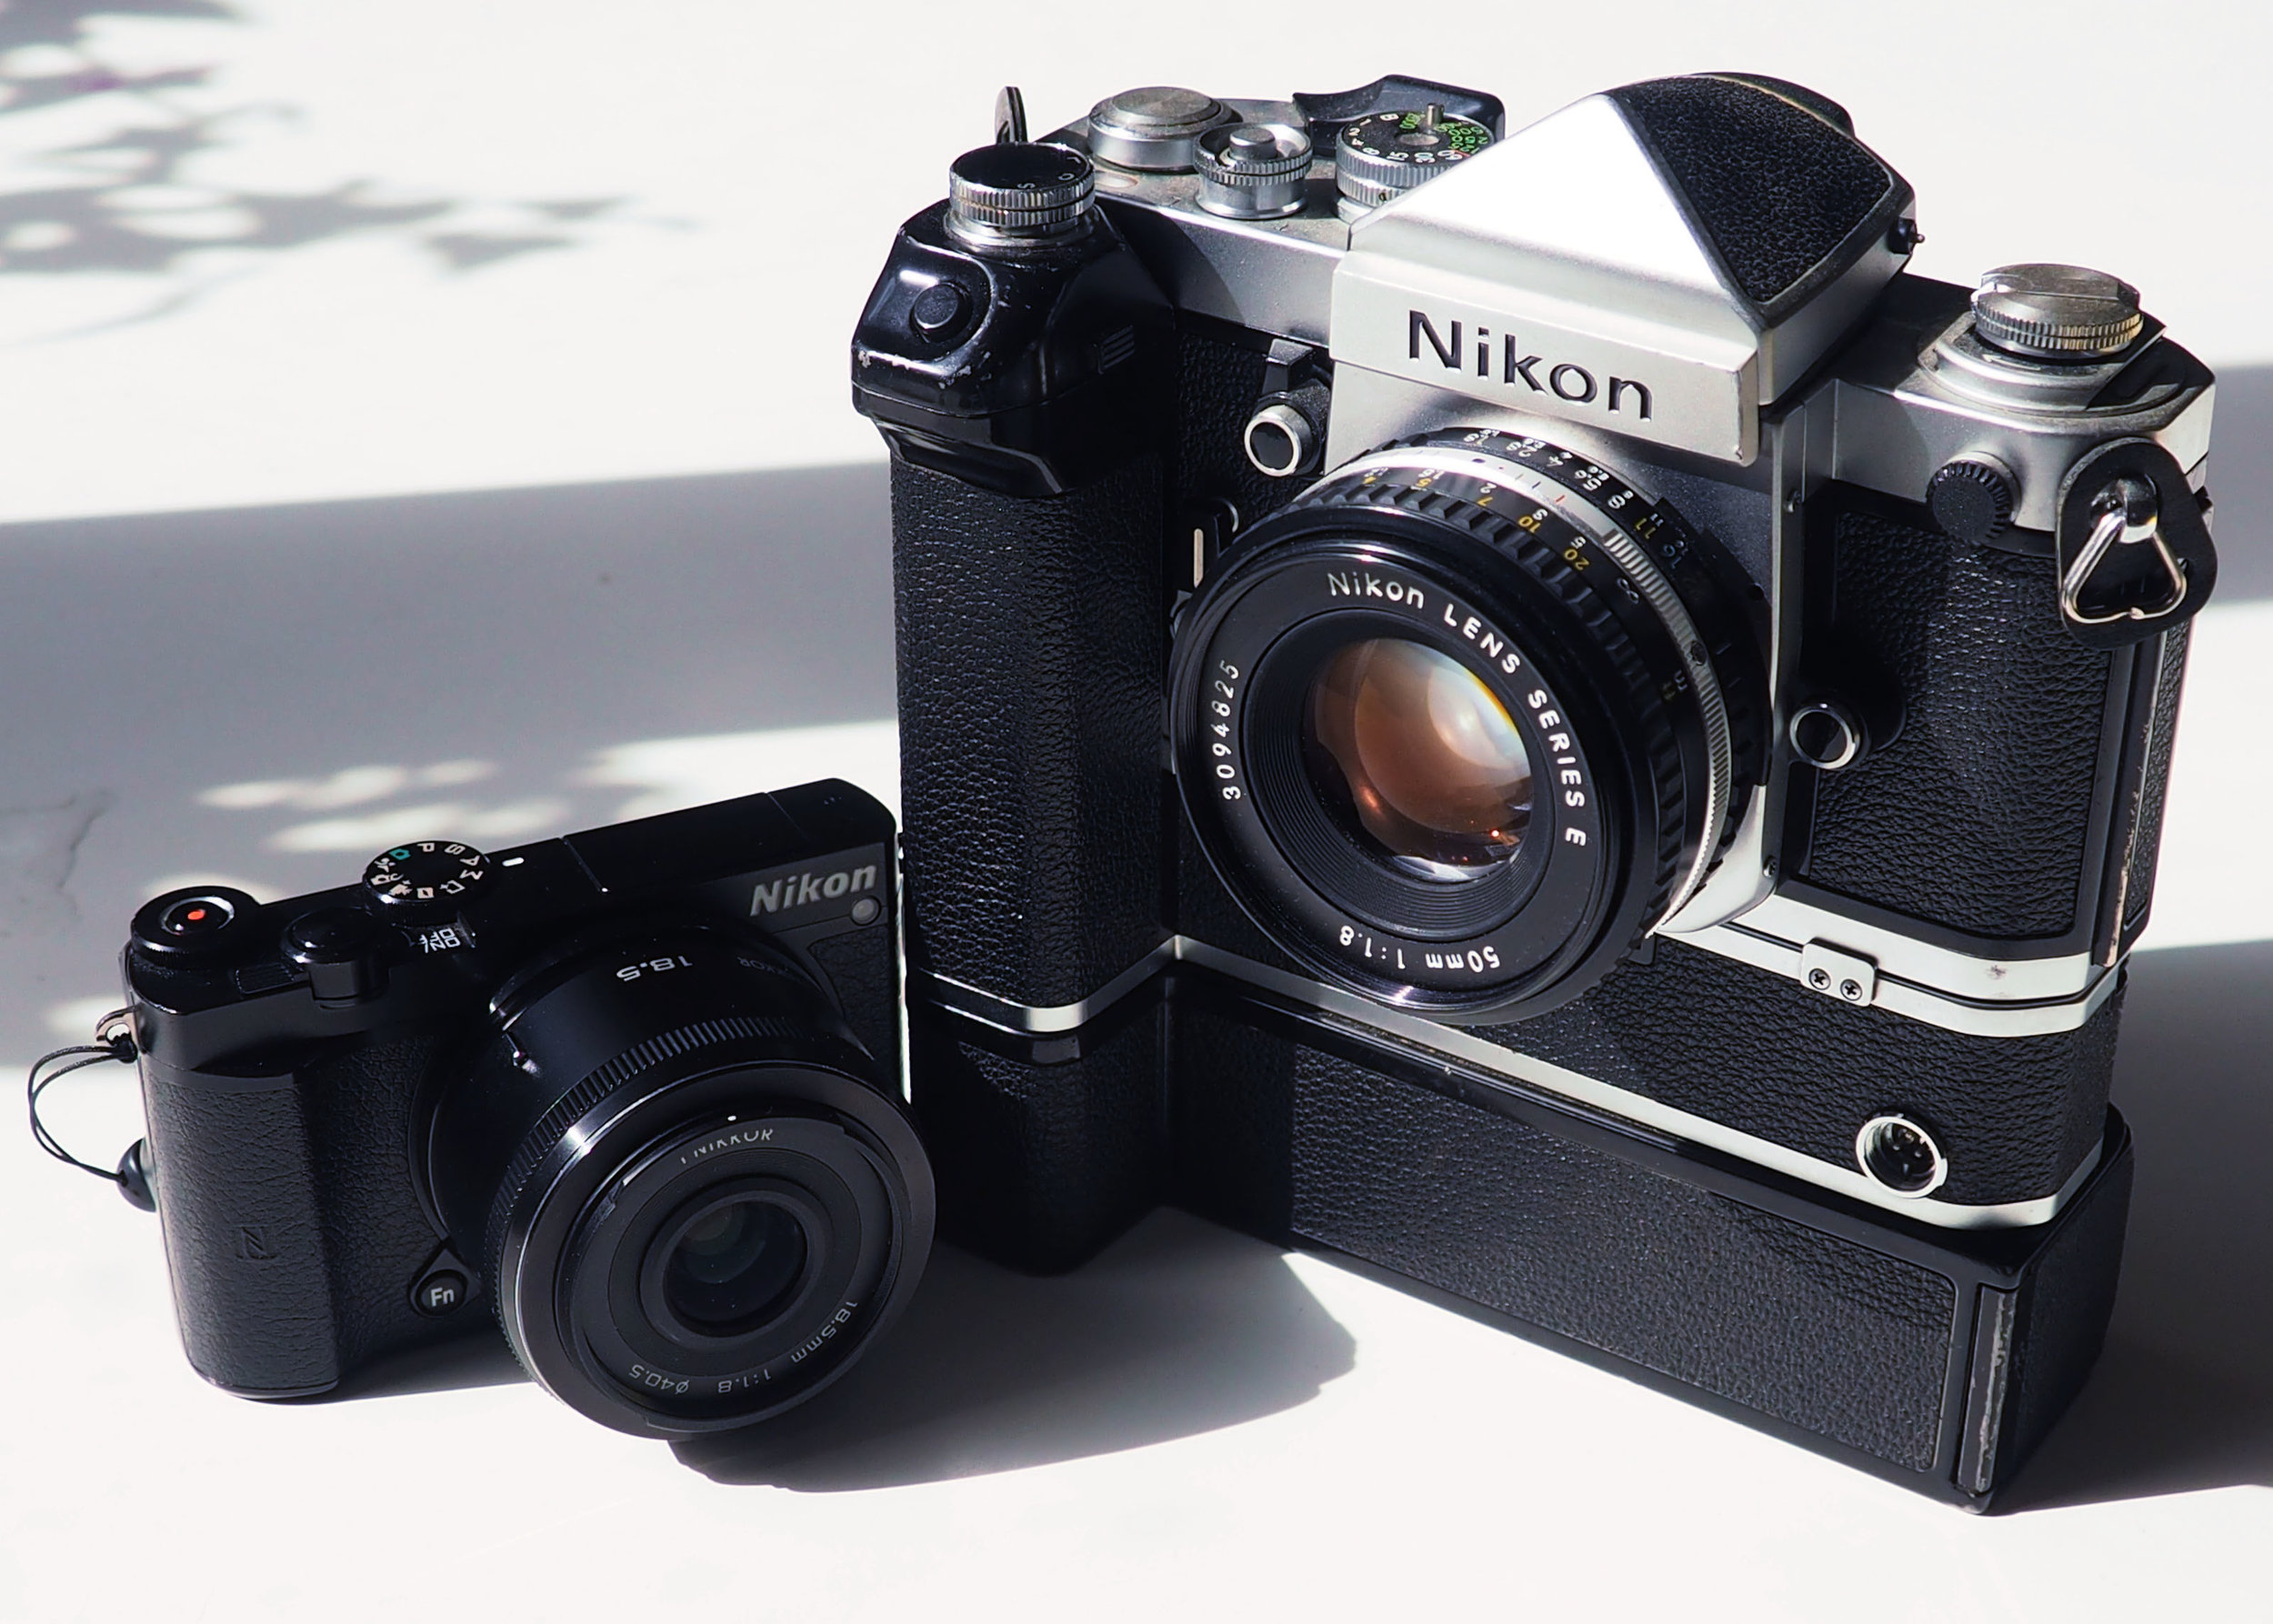 The Nikon J5 alongside the Nikon F2. The F2 will stop a bullet but only fires at 5 frames per second with the pictured MD-2 motor drive. The J5 should survive an impact from an errant ping-pong ball and can shoot at 60 frames per second. The F2 makes you feel like a conflict photographer until your shoulder starts to hurt and you realize you wouldn't last five minutes in the shit. The J5 is so light you forget you're carrying it.